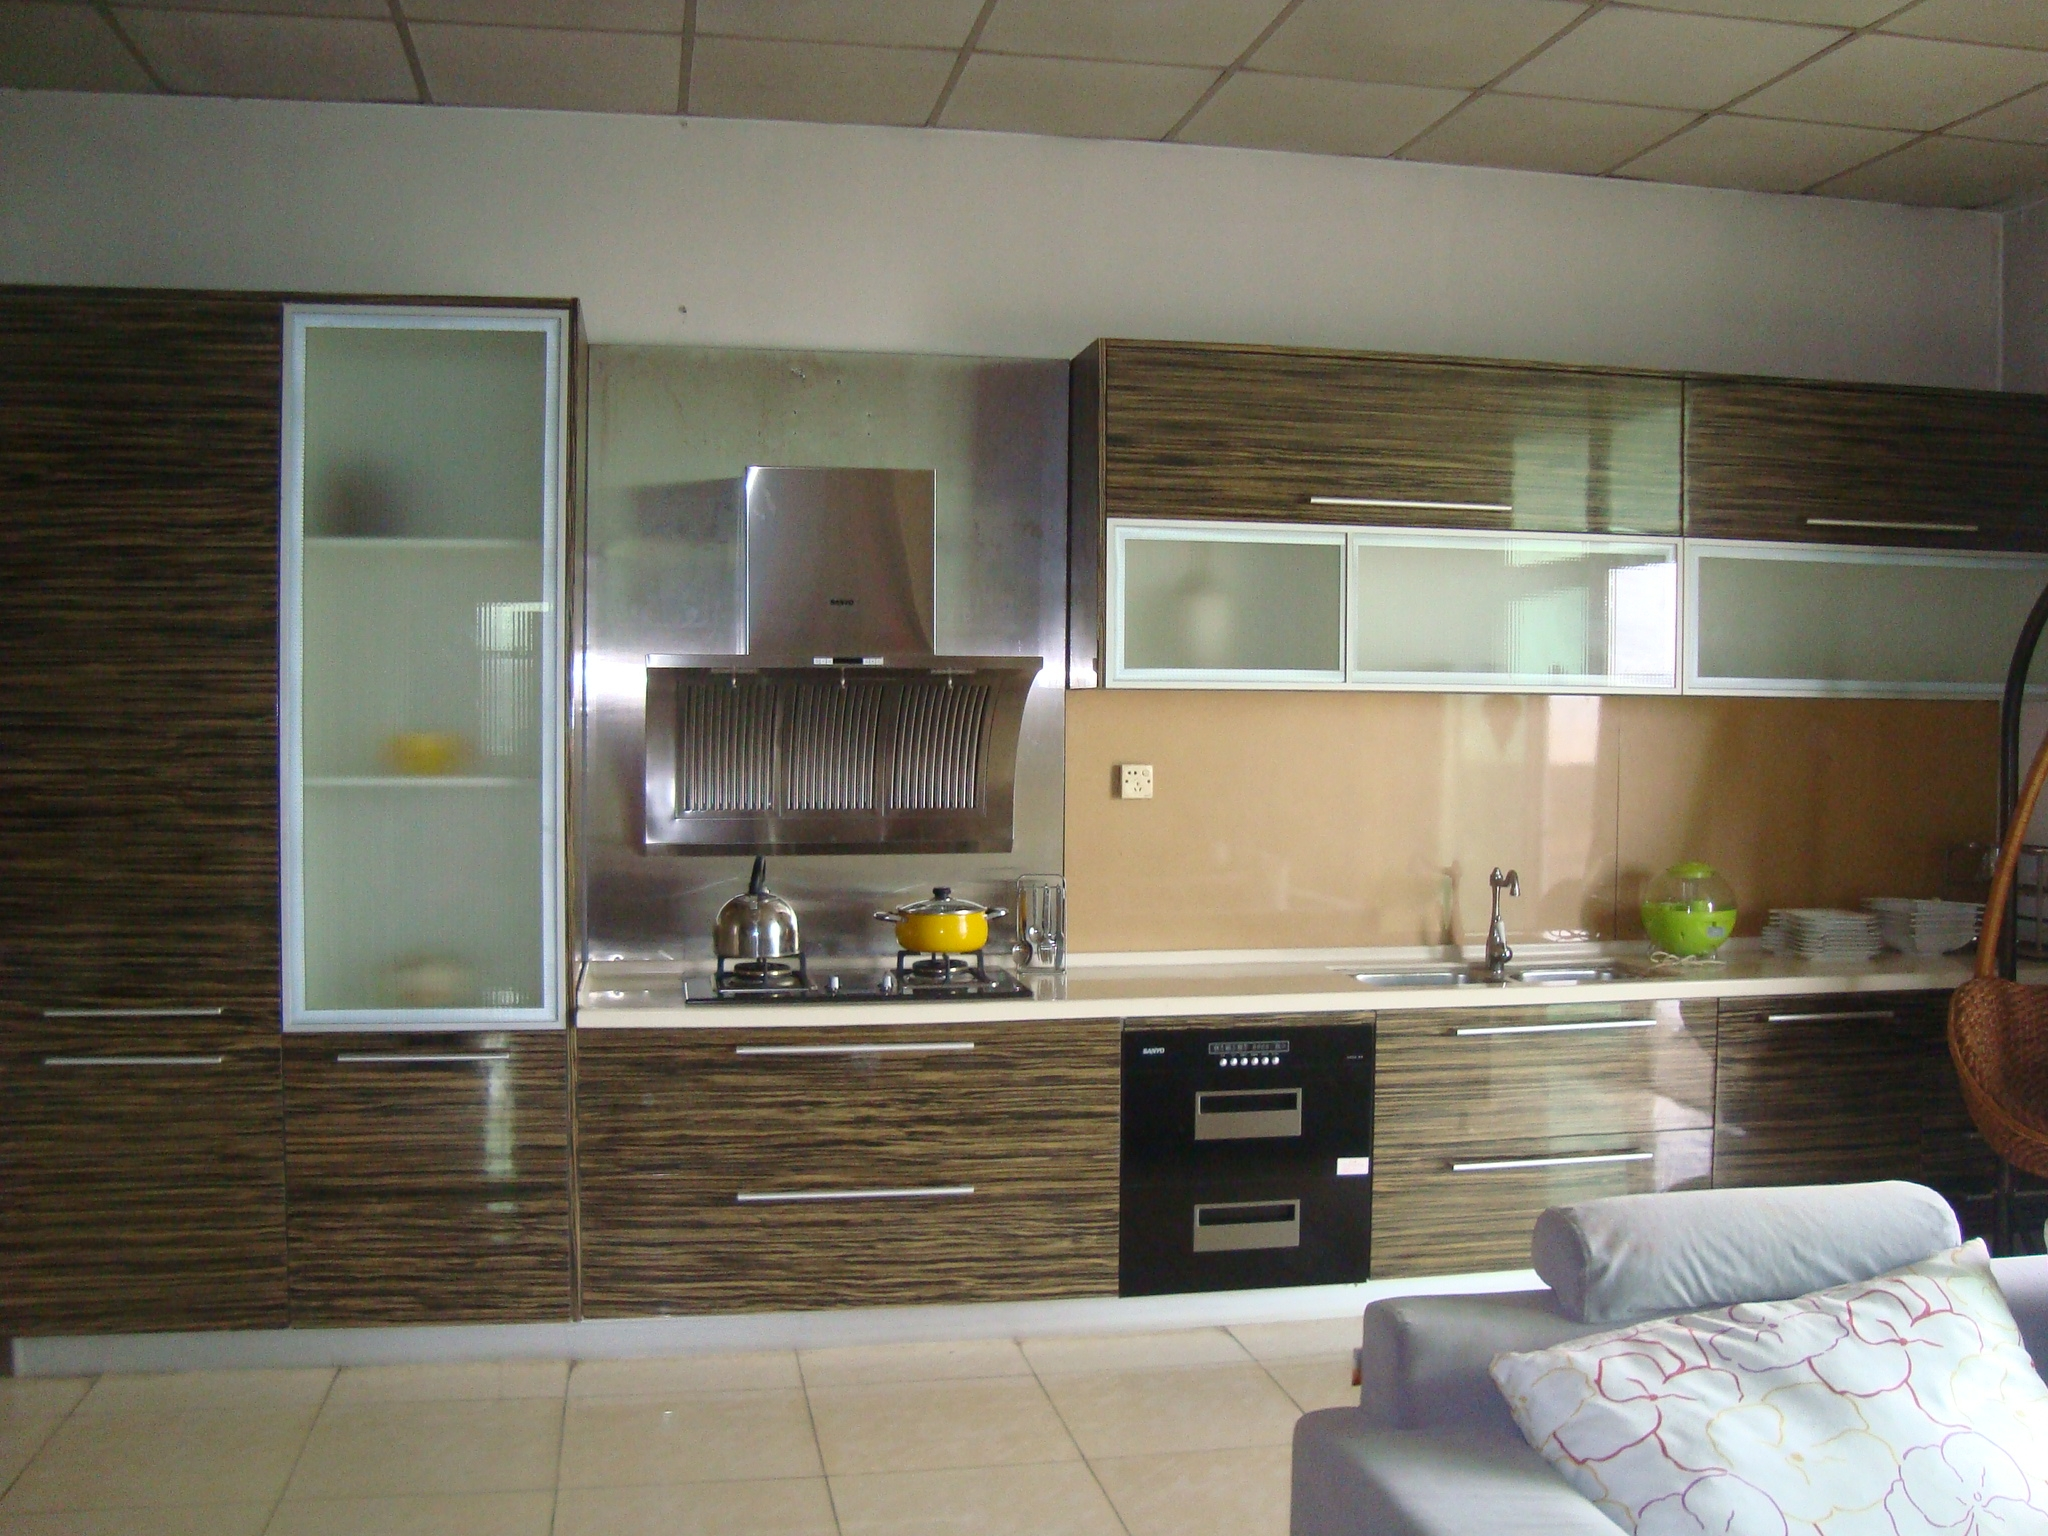 Kitchen Cabinets Laminate Wood